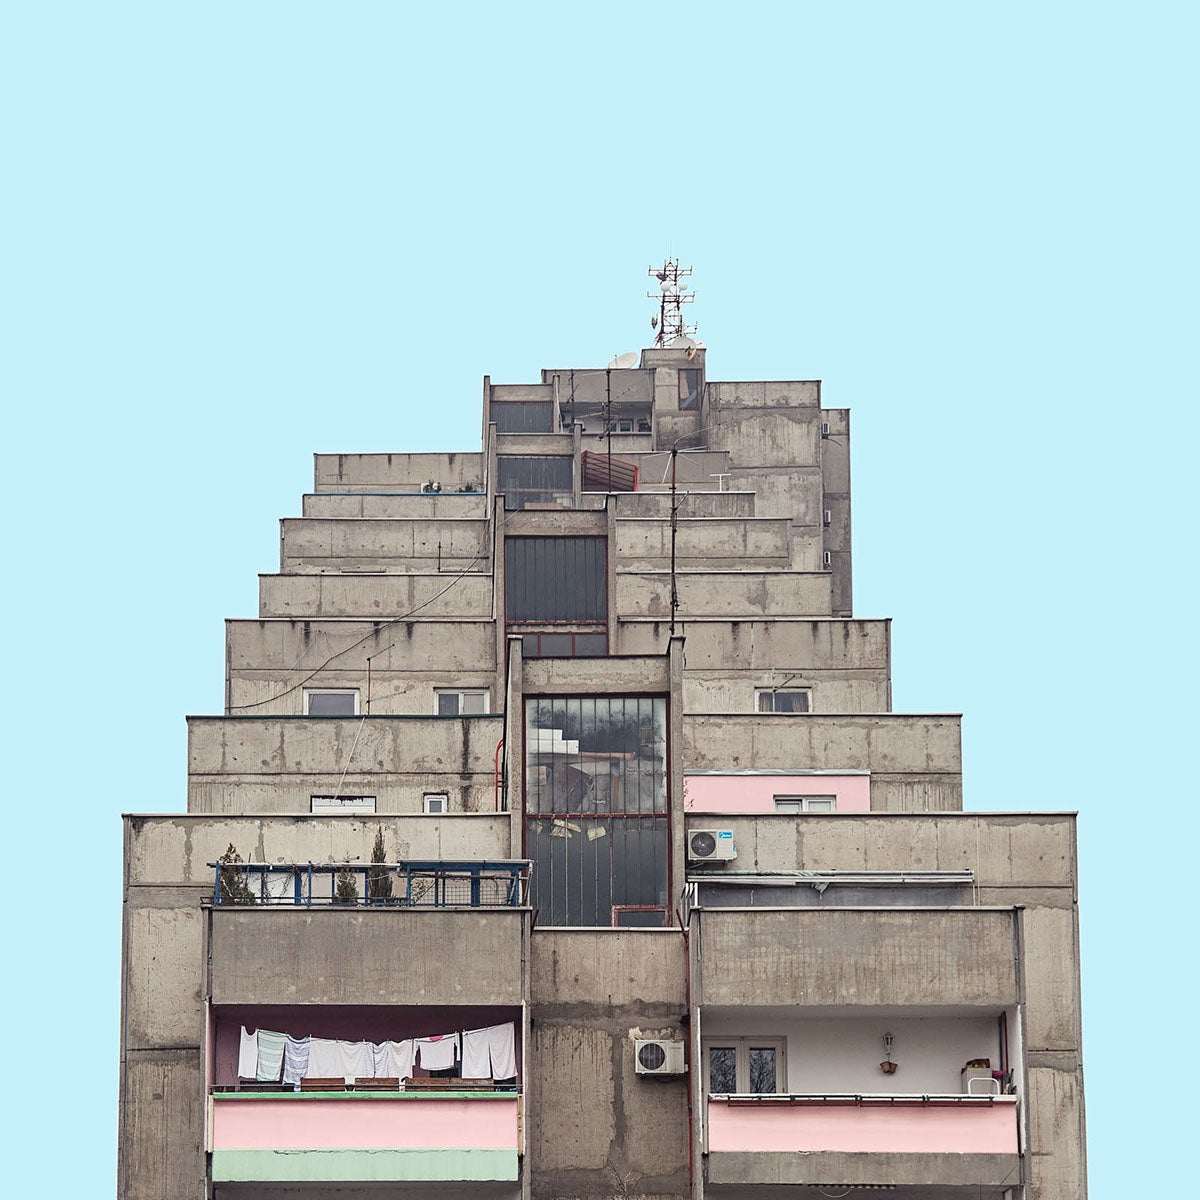 These Photos of Belgrade's Socialist Architecture Look Like Ancient Spaceships